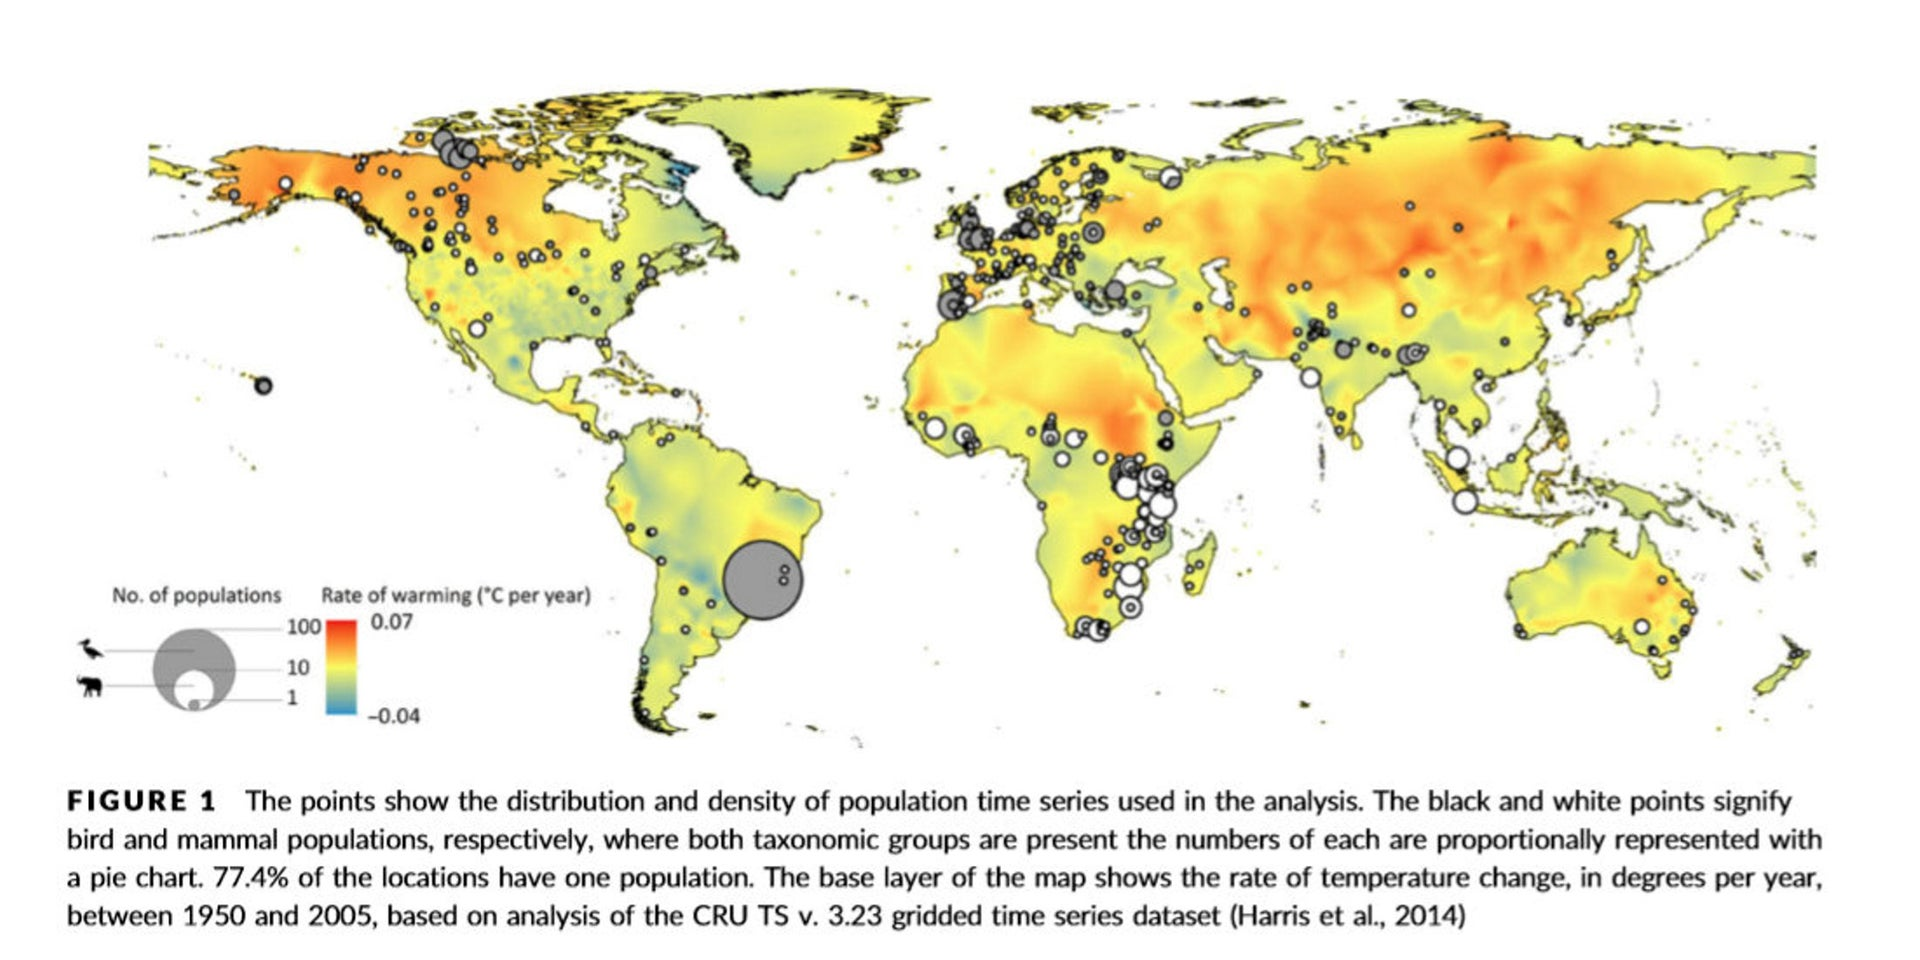 7 Heat map of world showing areas of warmth along with population distribution